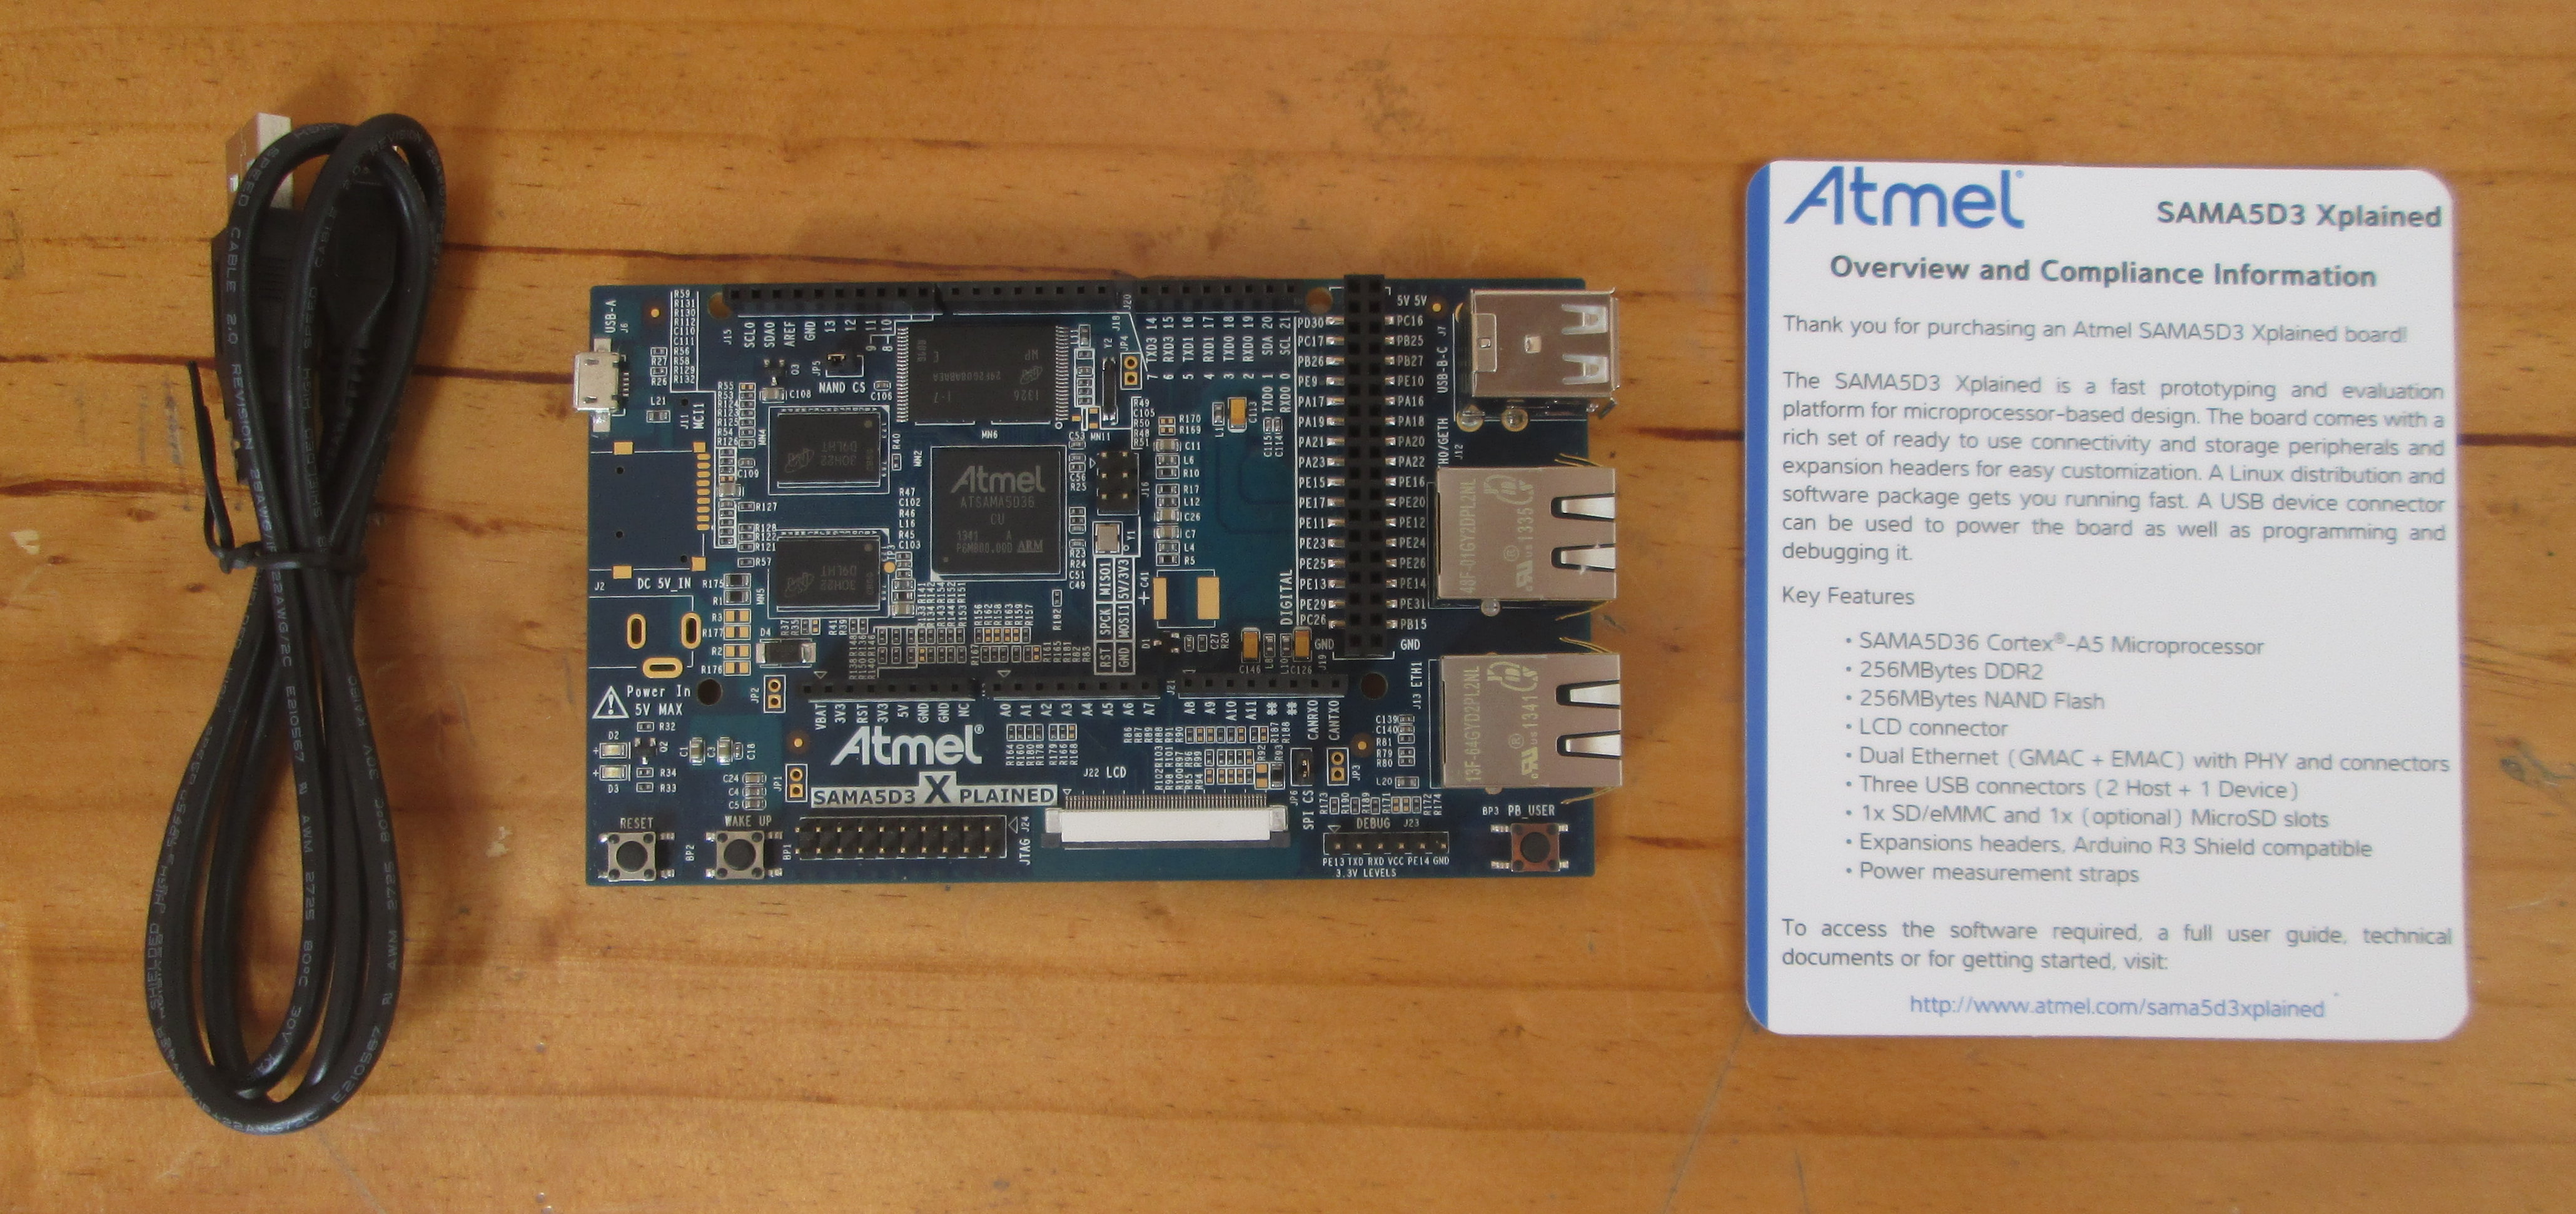 Atmel SAMA5D3 Xplained Board Unboxing and Quick Start Guide